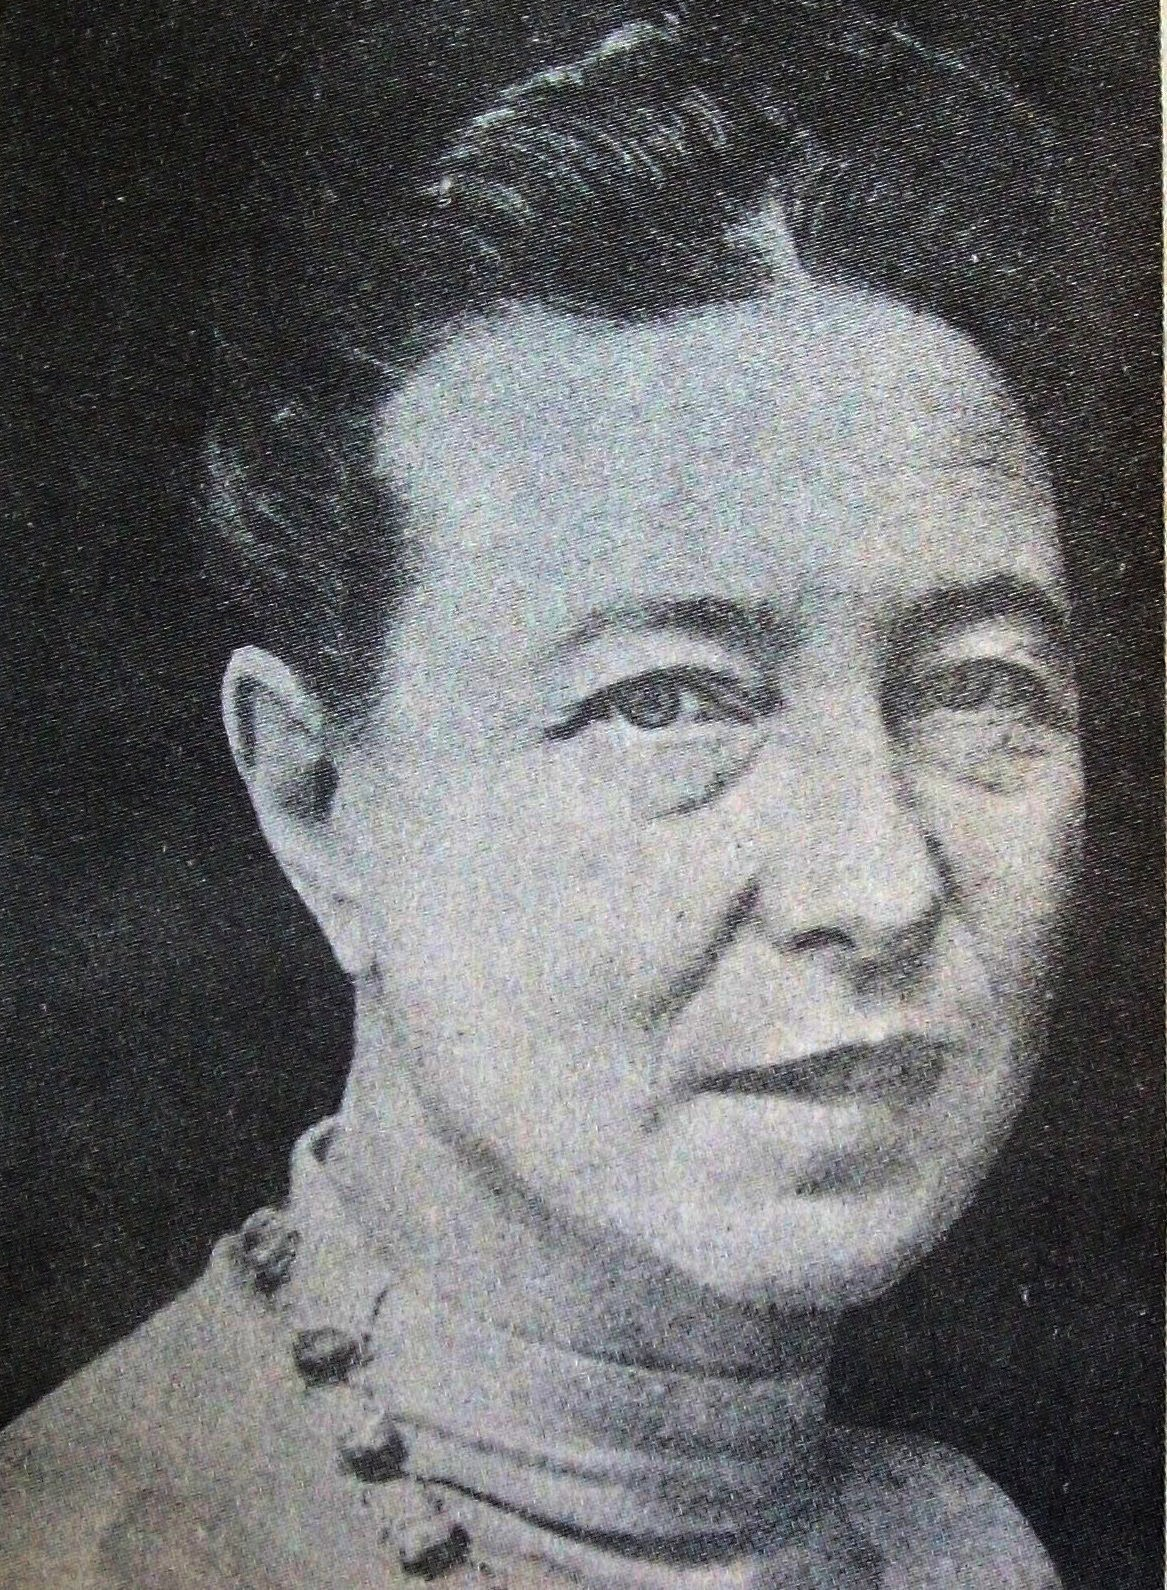 Medium simone de beauvoir